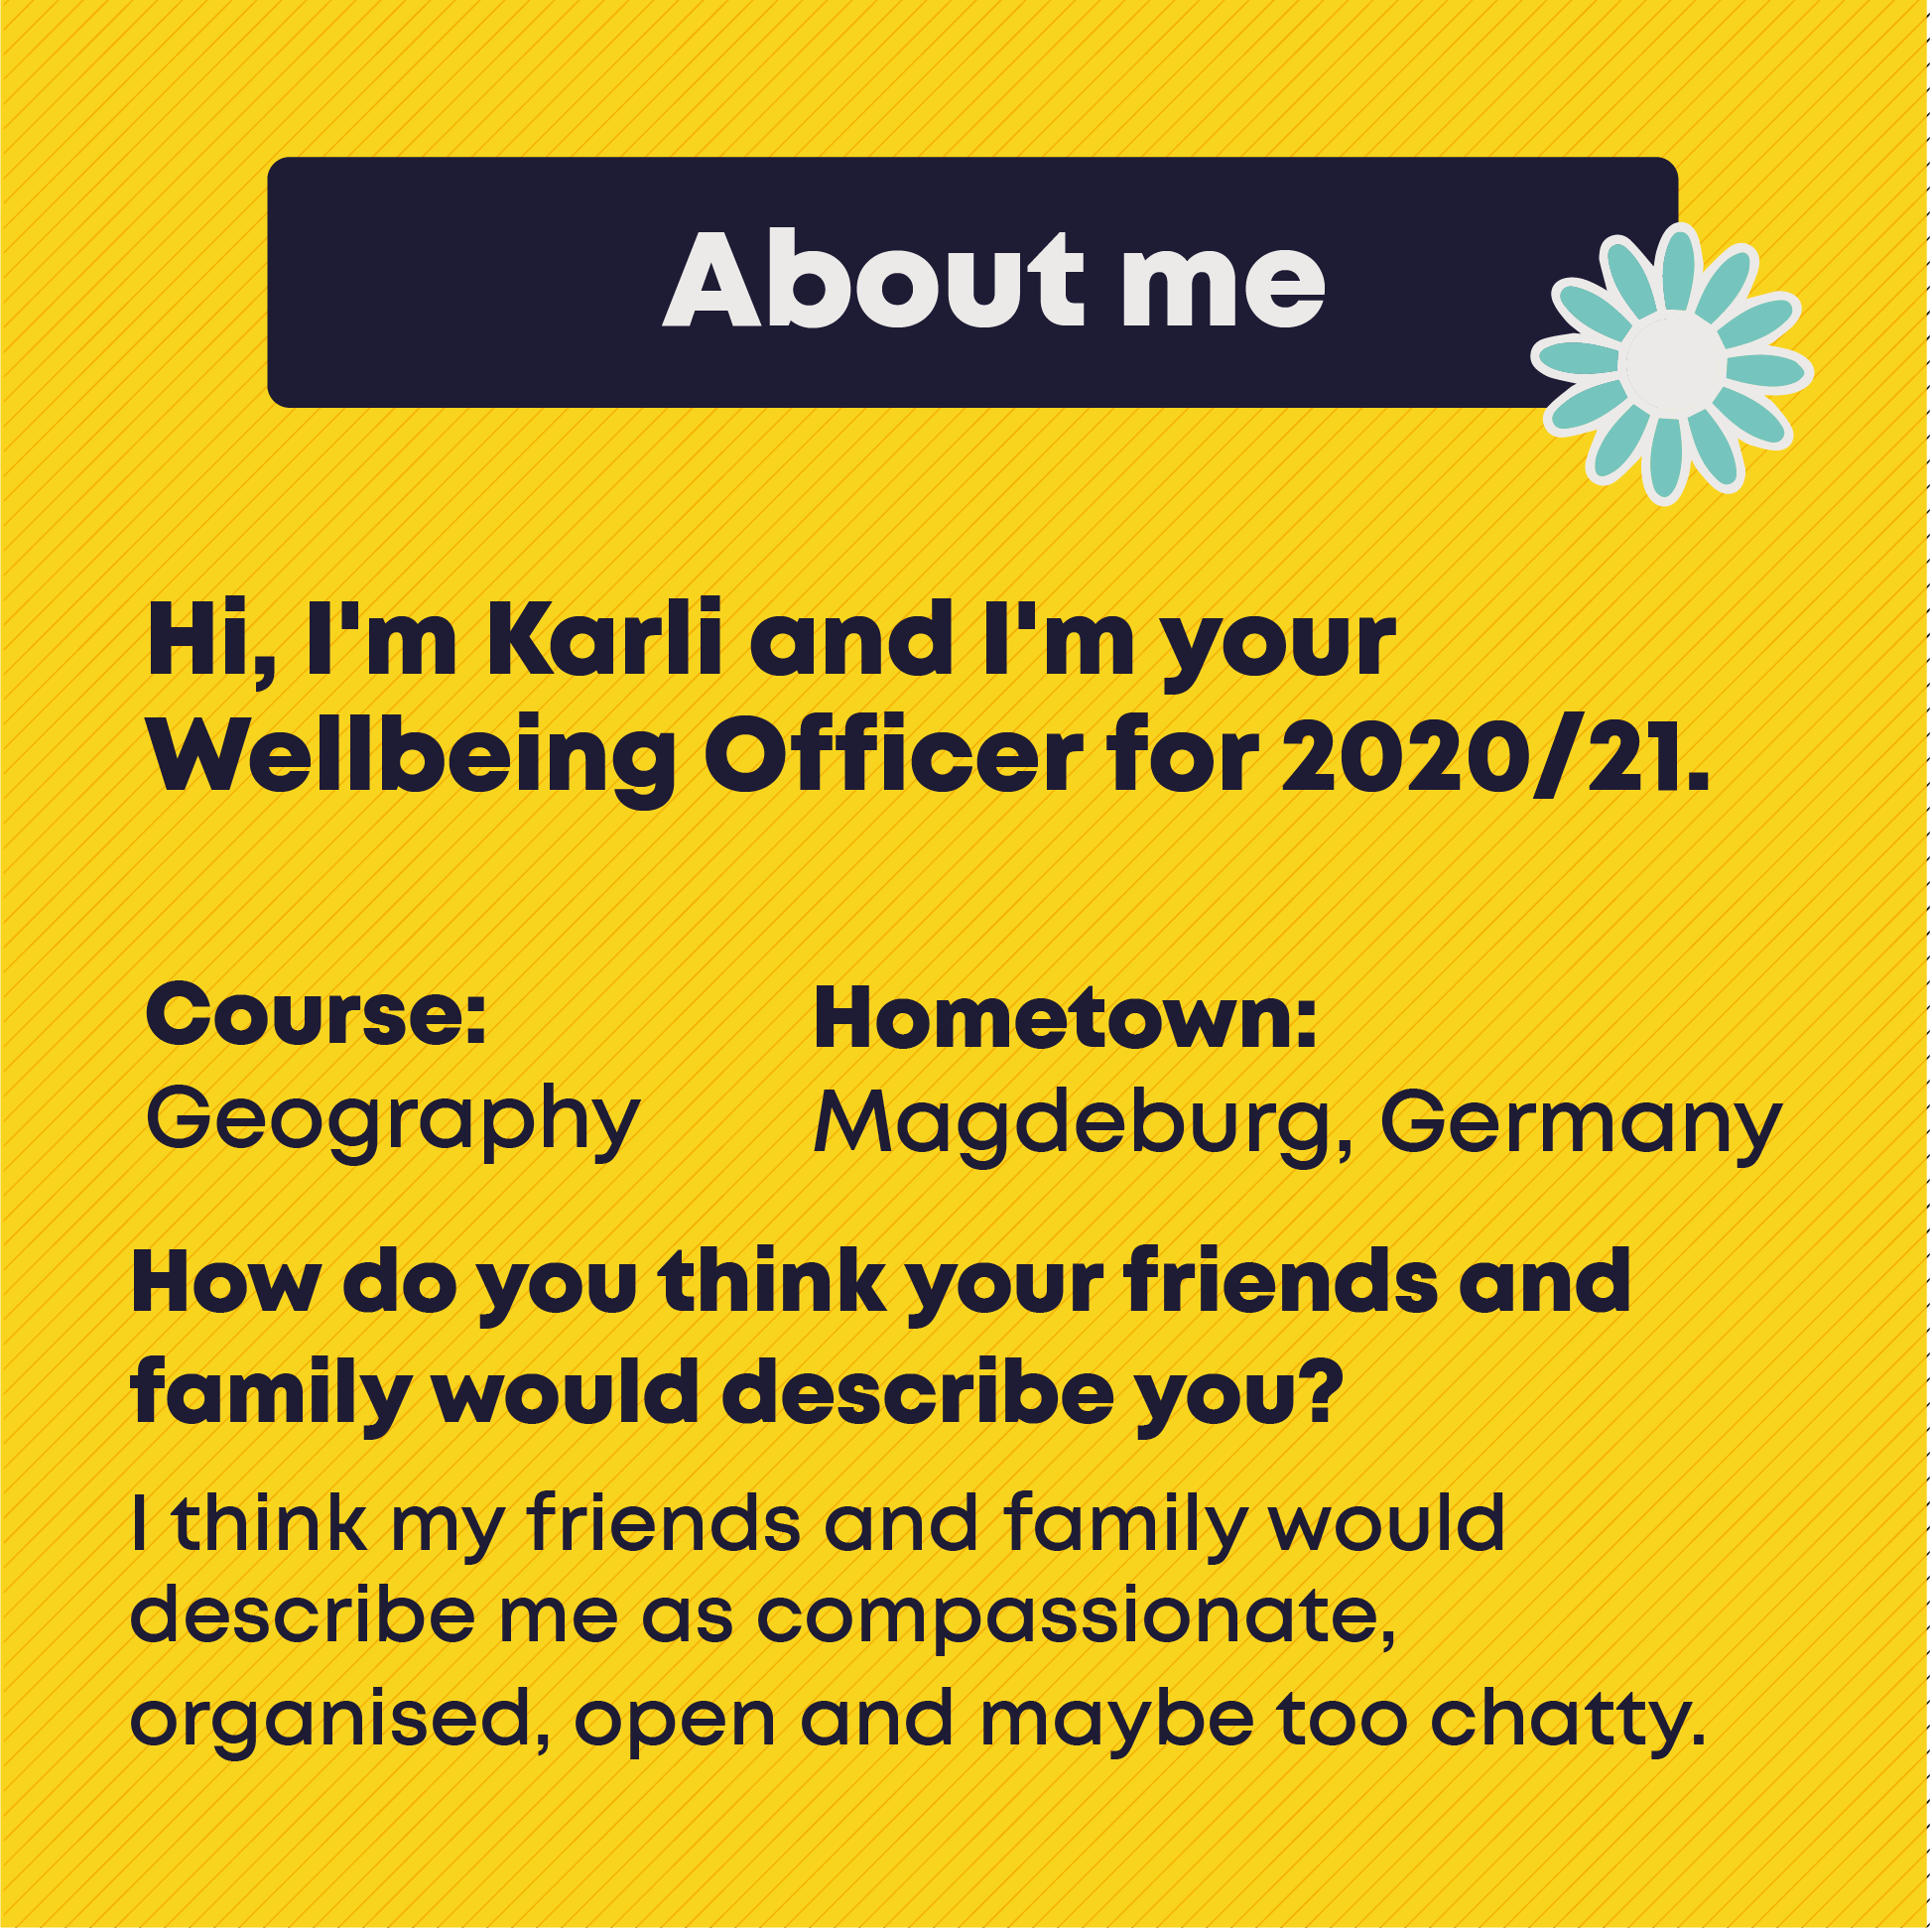 About me. Hi, I'm Karli and I'm your Wellbeing Officer for 2020/21. Course:Geography. Hometown: Magdeburg, Germany. How do you think your friends and family would describe you?  I think my friends and family would describe me as compassionate,  organised, open and maybe too chatty.